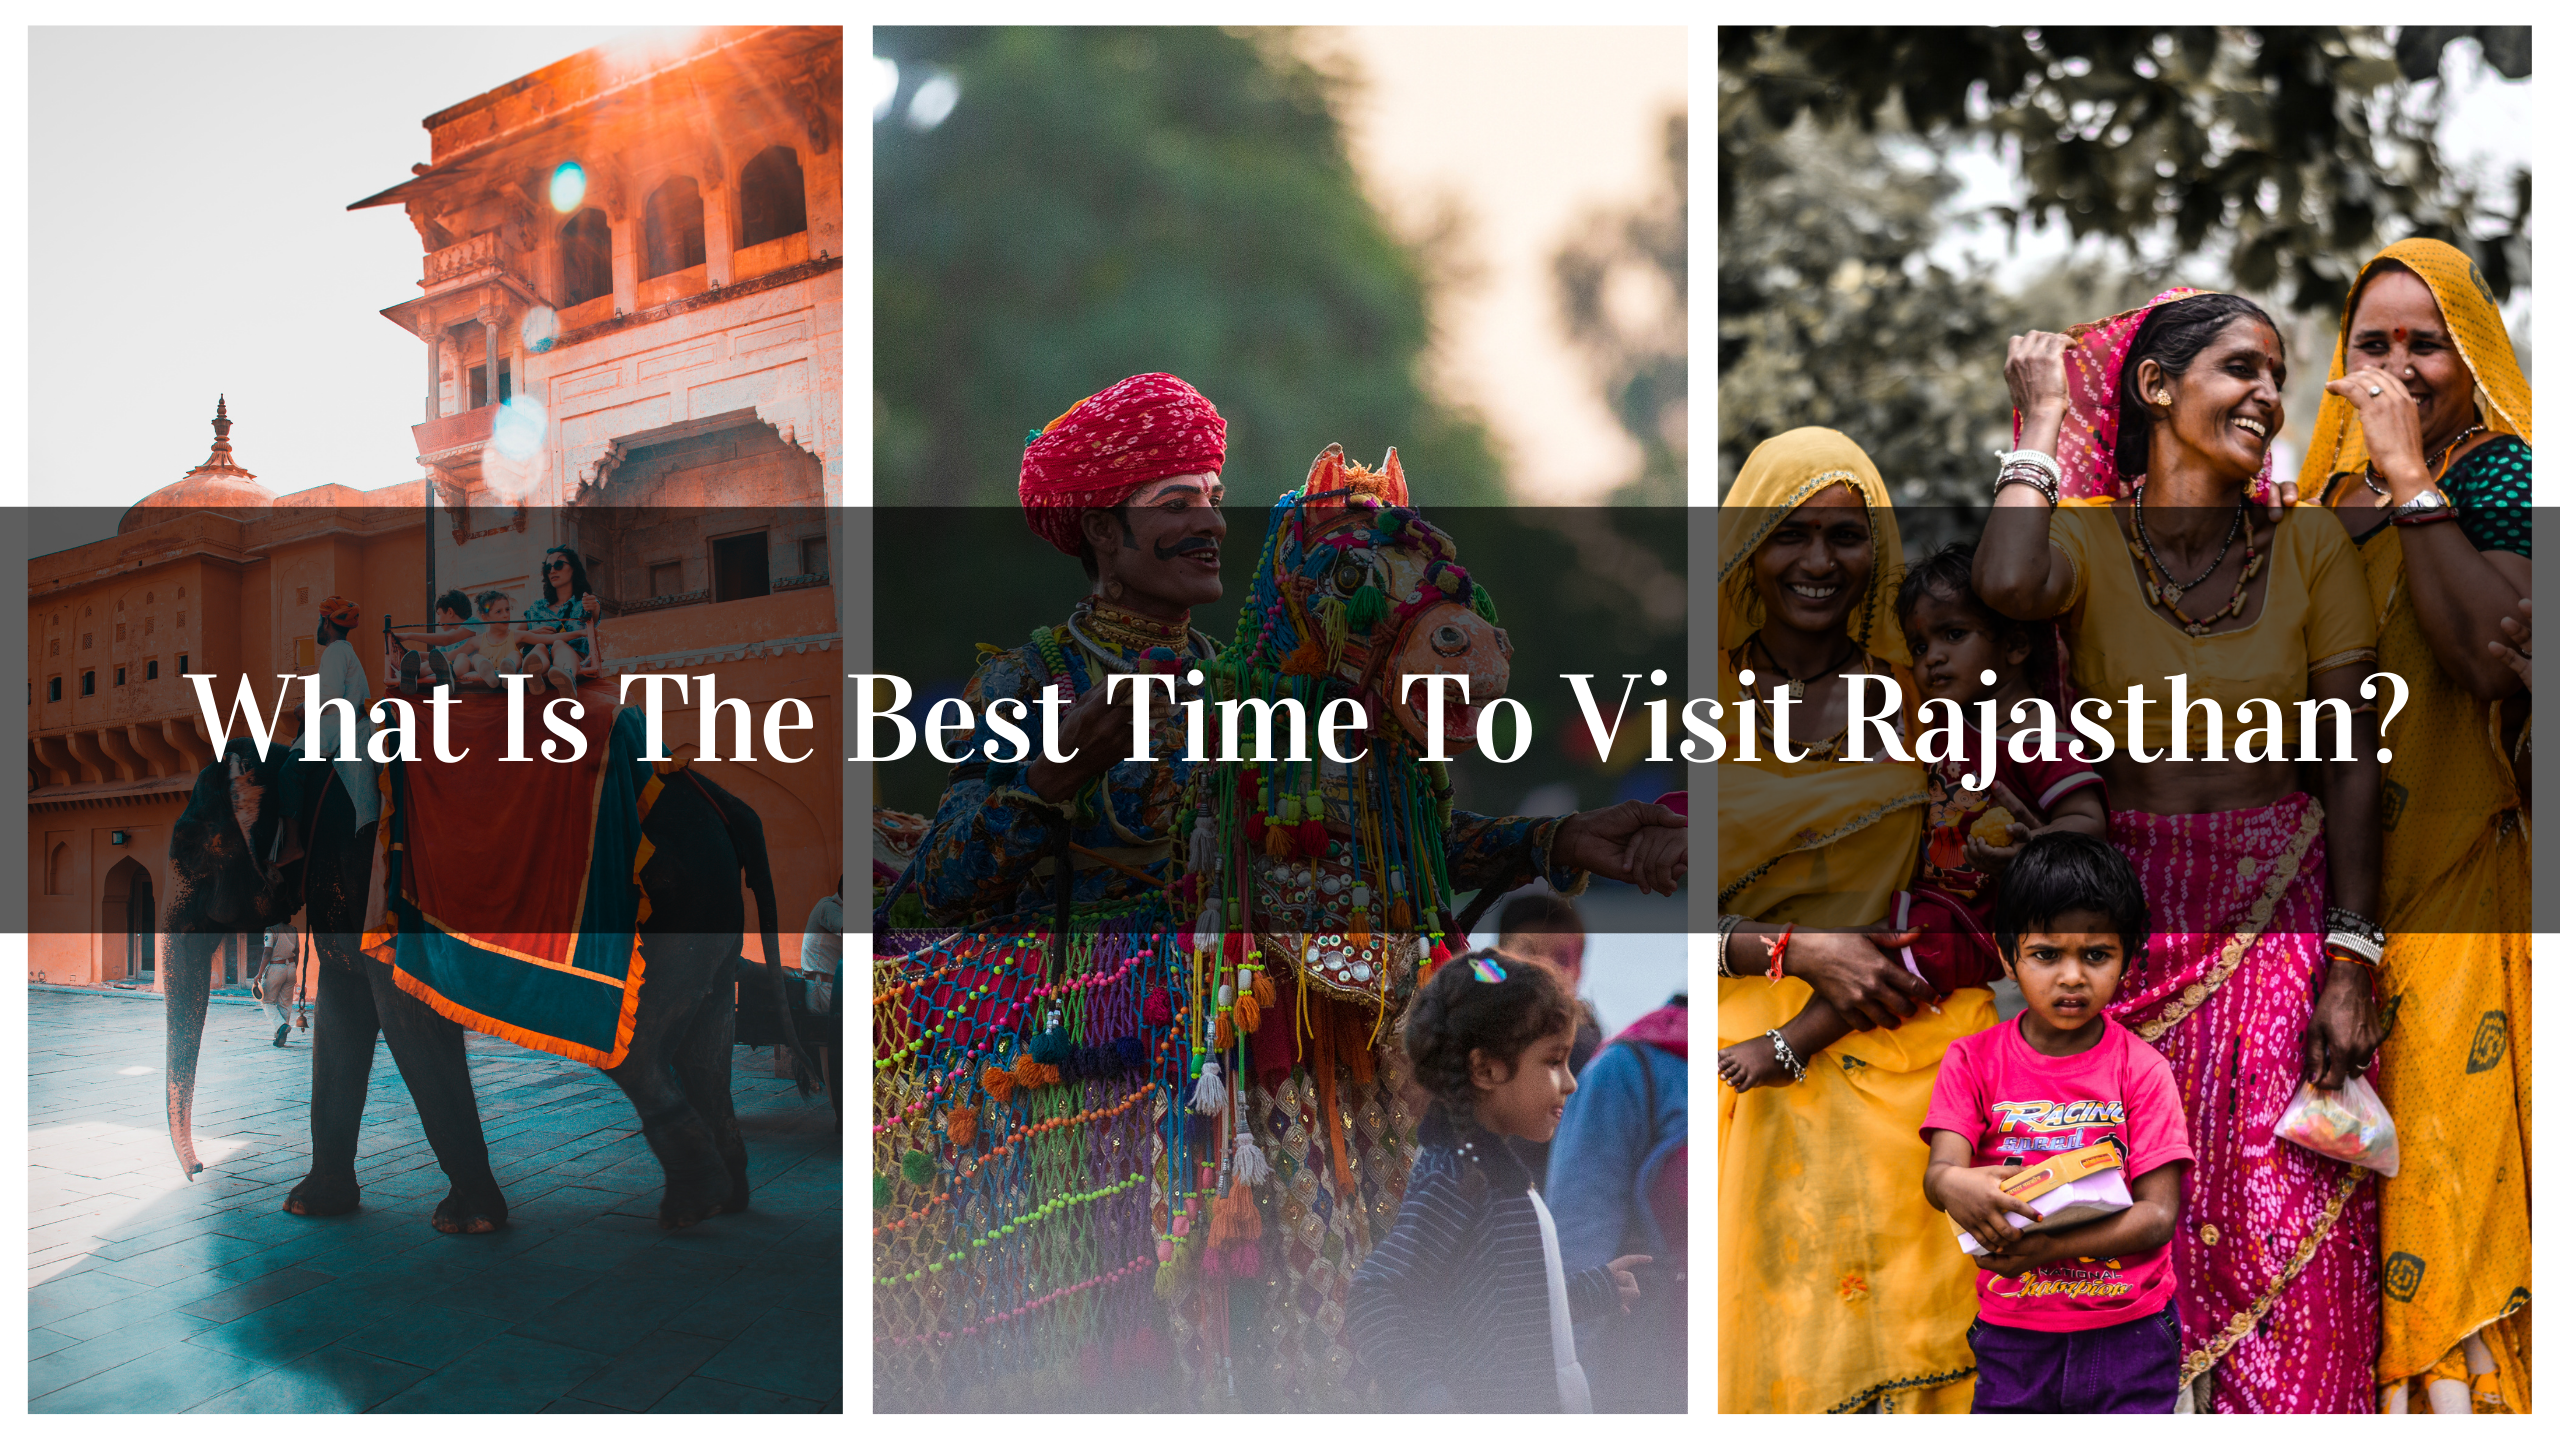 What Is The Best Time To Visit Rajasthan?